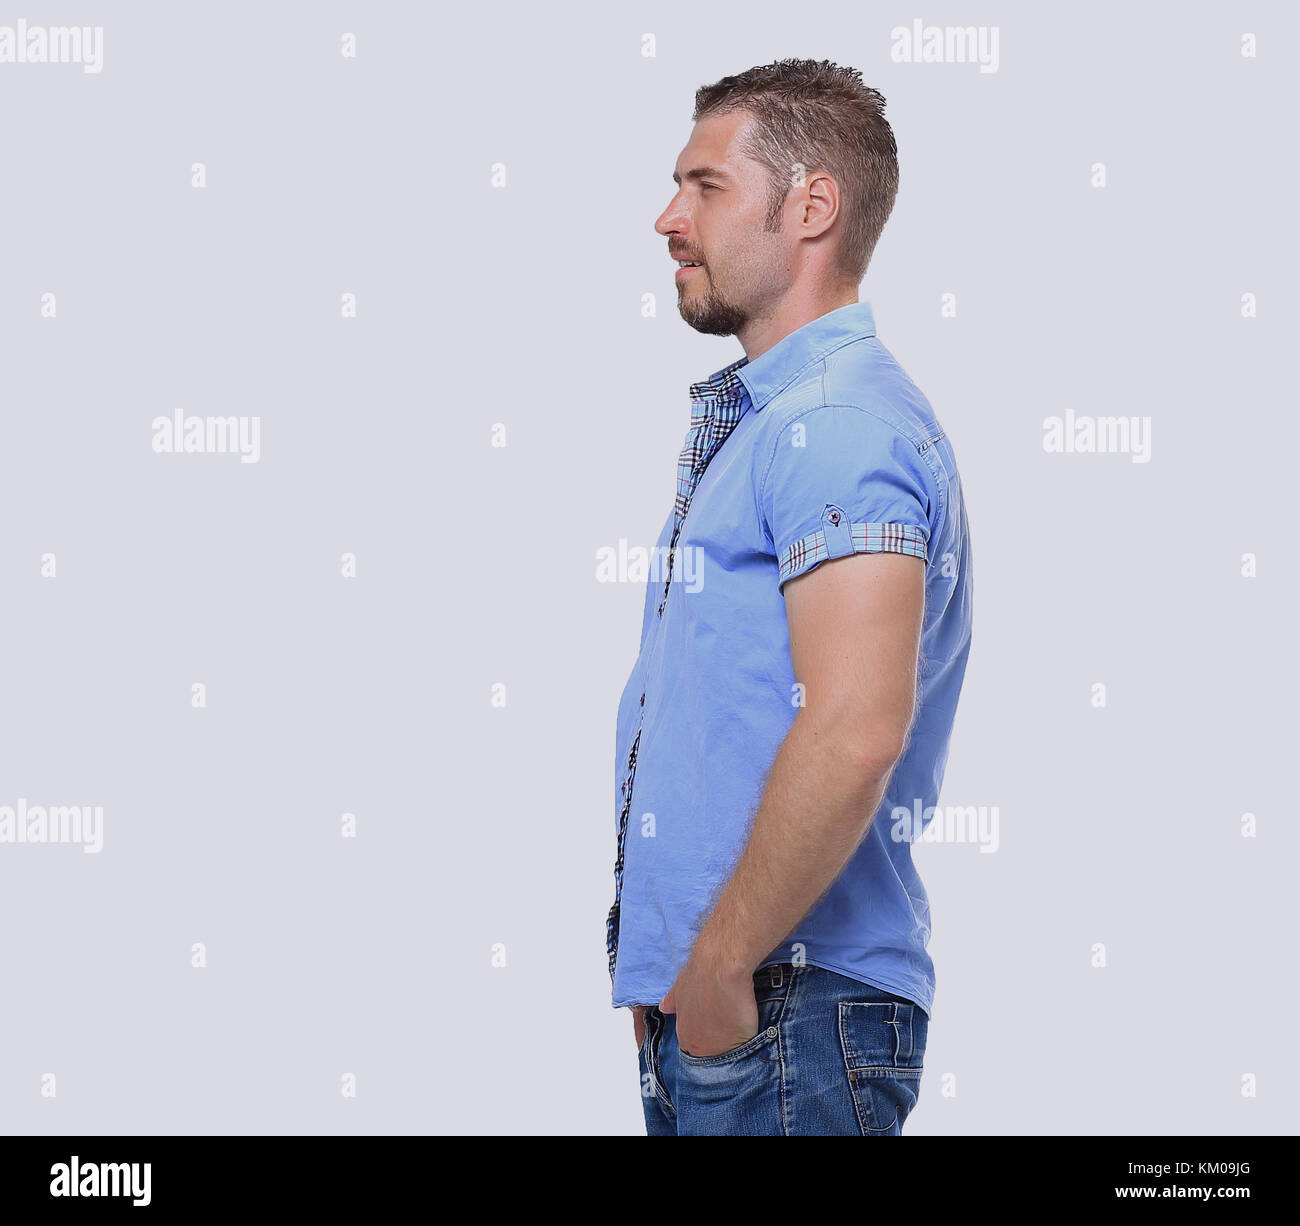 Full body of young man looking away isolated on white background - Stock Image